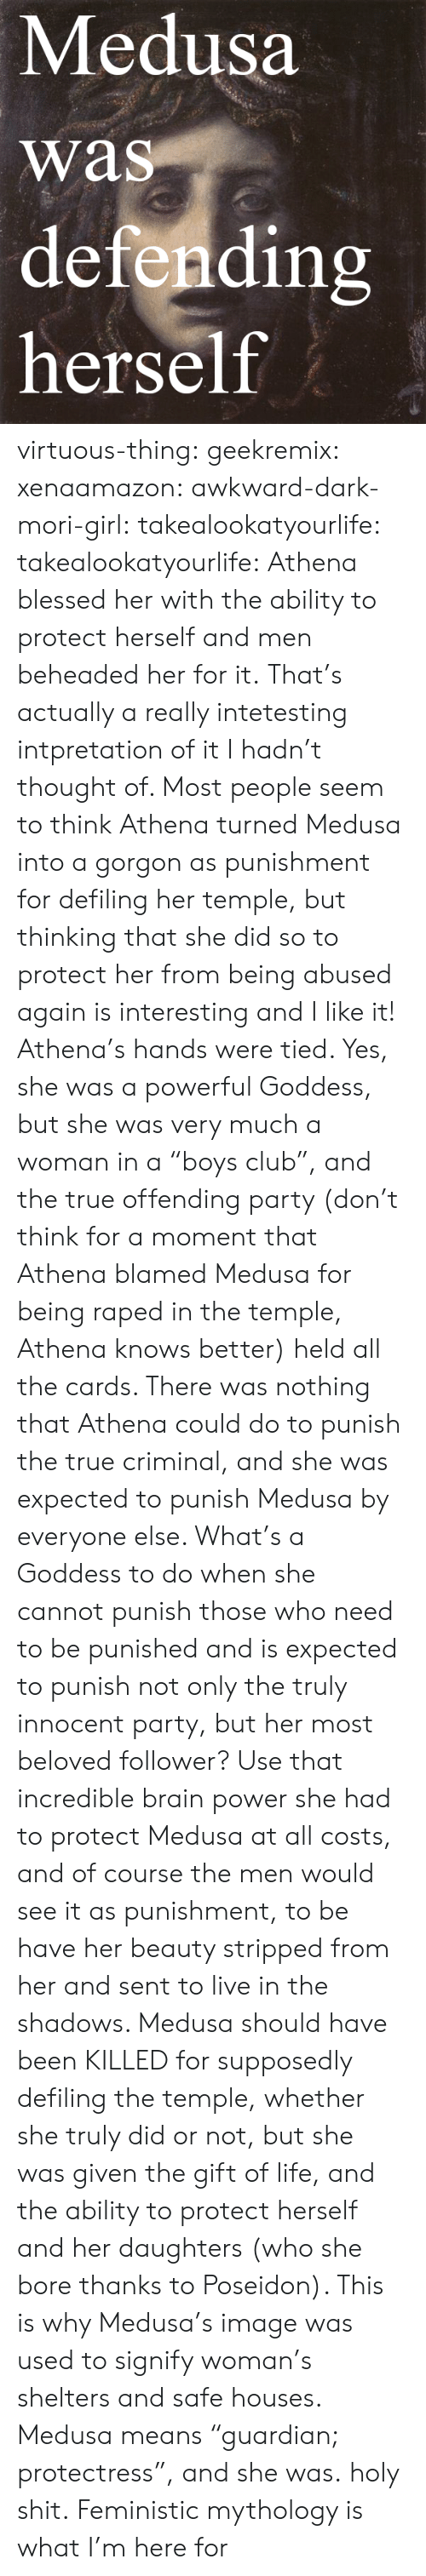 """Shelters: Medusa  was  defendin  herself  rs virtuous-thing: geekremix:  xenaamazon:  awkward-dark-mori-girl:  takealookatyourlife:  takealookatyourlife: Athena blessed her with the ability to protect herself and men beheaded her for it.  That's actually a really intetesting intpretation of it I hadn't thought of. Most people seem to think Athena turned Medusa into a gorgon as punishment for defiling her temple, but thinking that she did so to protect her from being abused again is interesting and I like it!   Athena's hands were tied. Yes, she was a powerful Goddess, but she was very much a woman in a """"boys club"""", and the true offending party (don't think for a moment that Athena blamed Medusa for being raped in the temple, Athena knows better) held all the cards. There was nothing that Athena could do to punish the true criminal, and she was expected to punish Medusa by everyone else. What's a Goddess to do when she cannot punish those who need to be punished and is expected to punish not only the truly innocent party, but her most beloved follower? Use that incredible brain power she had to protect Medusa at all costs, and of course the men would see it as punishment, to be have her beauty stripped from her and sent to live in the shadows. Medusa should have been KILLED for supposedly defiling the temple, whether she truly did or not, but she was given the gift of life, and the ability to protect herself and her daughters (who she bore thanks to Poseidon). This is why Medusa's image was used to signify woman's shelters and safe houses. Medusa means """"guardian; protectress"""", and she was.  holy shit.   Feministic mythology is what I'm here for"""